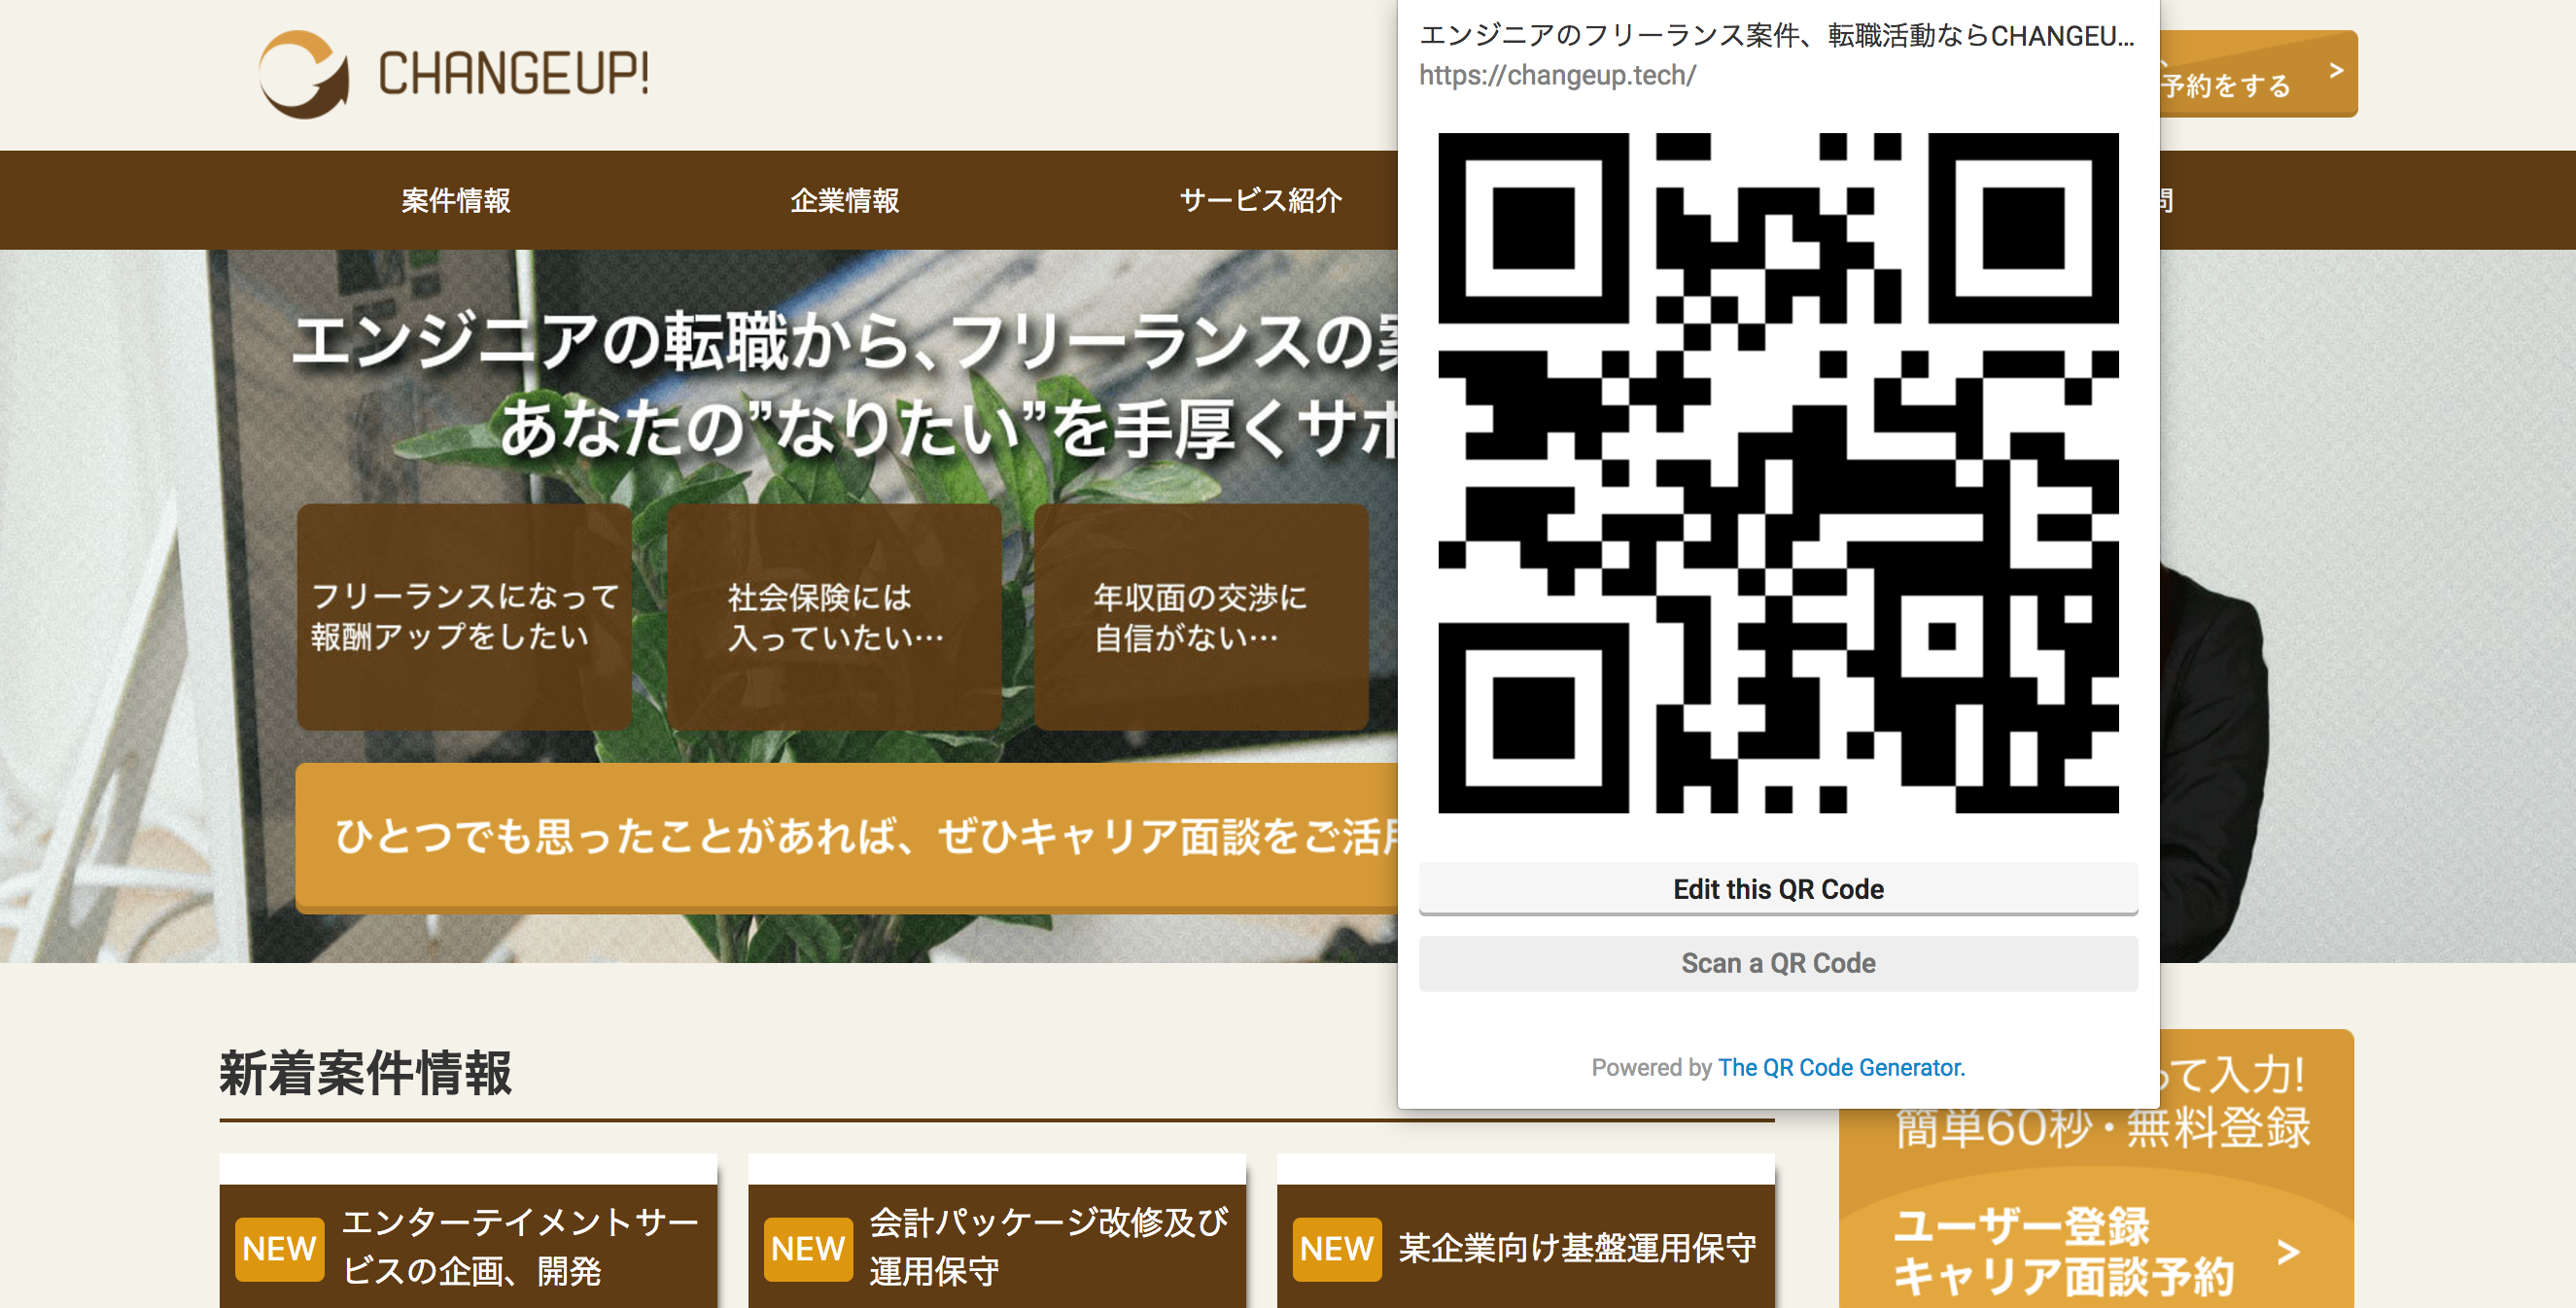 The QR Code Extensionの使い方